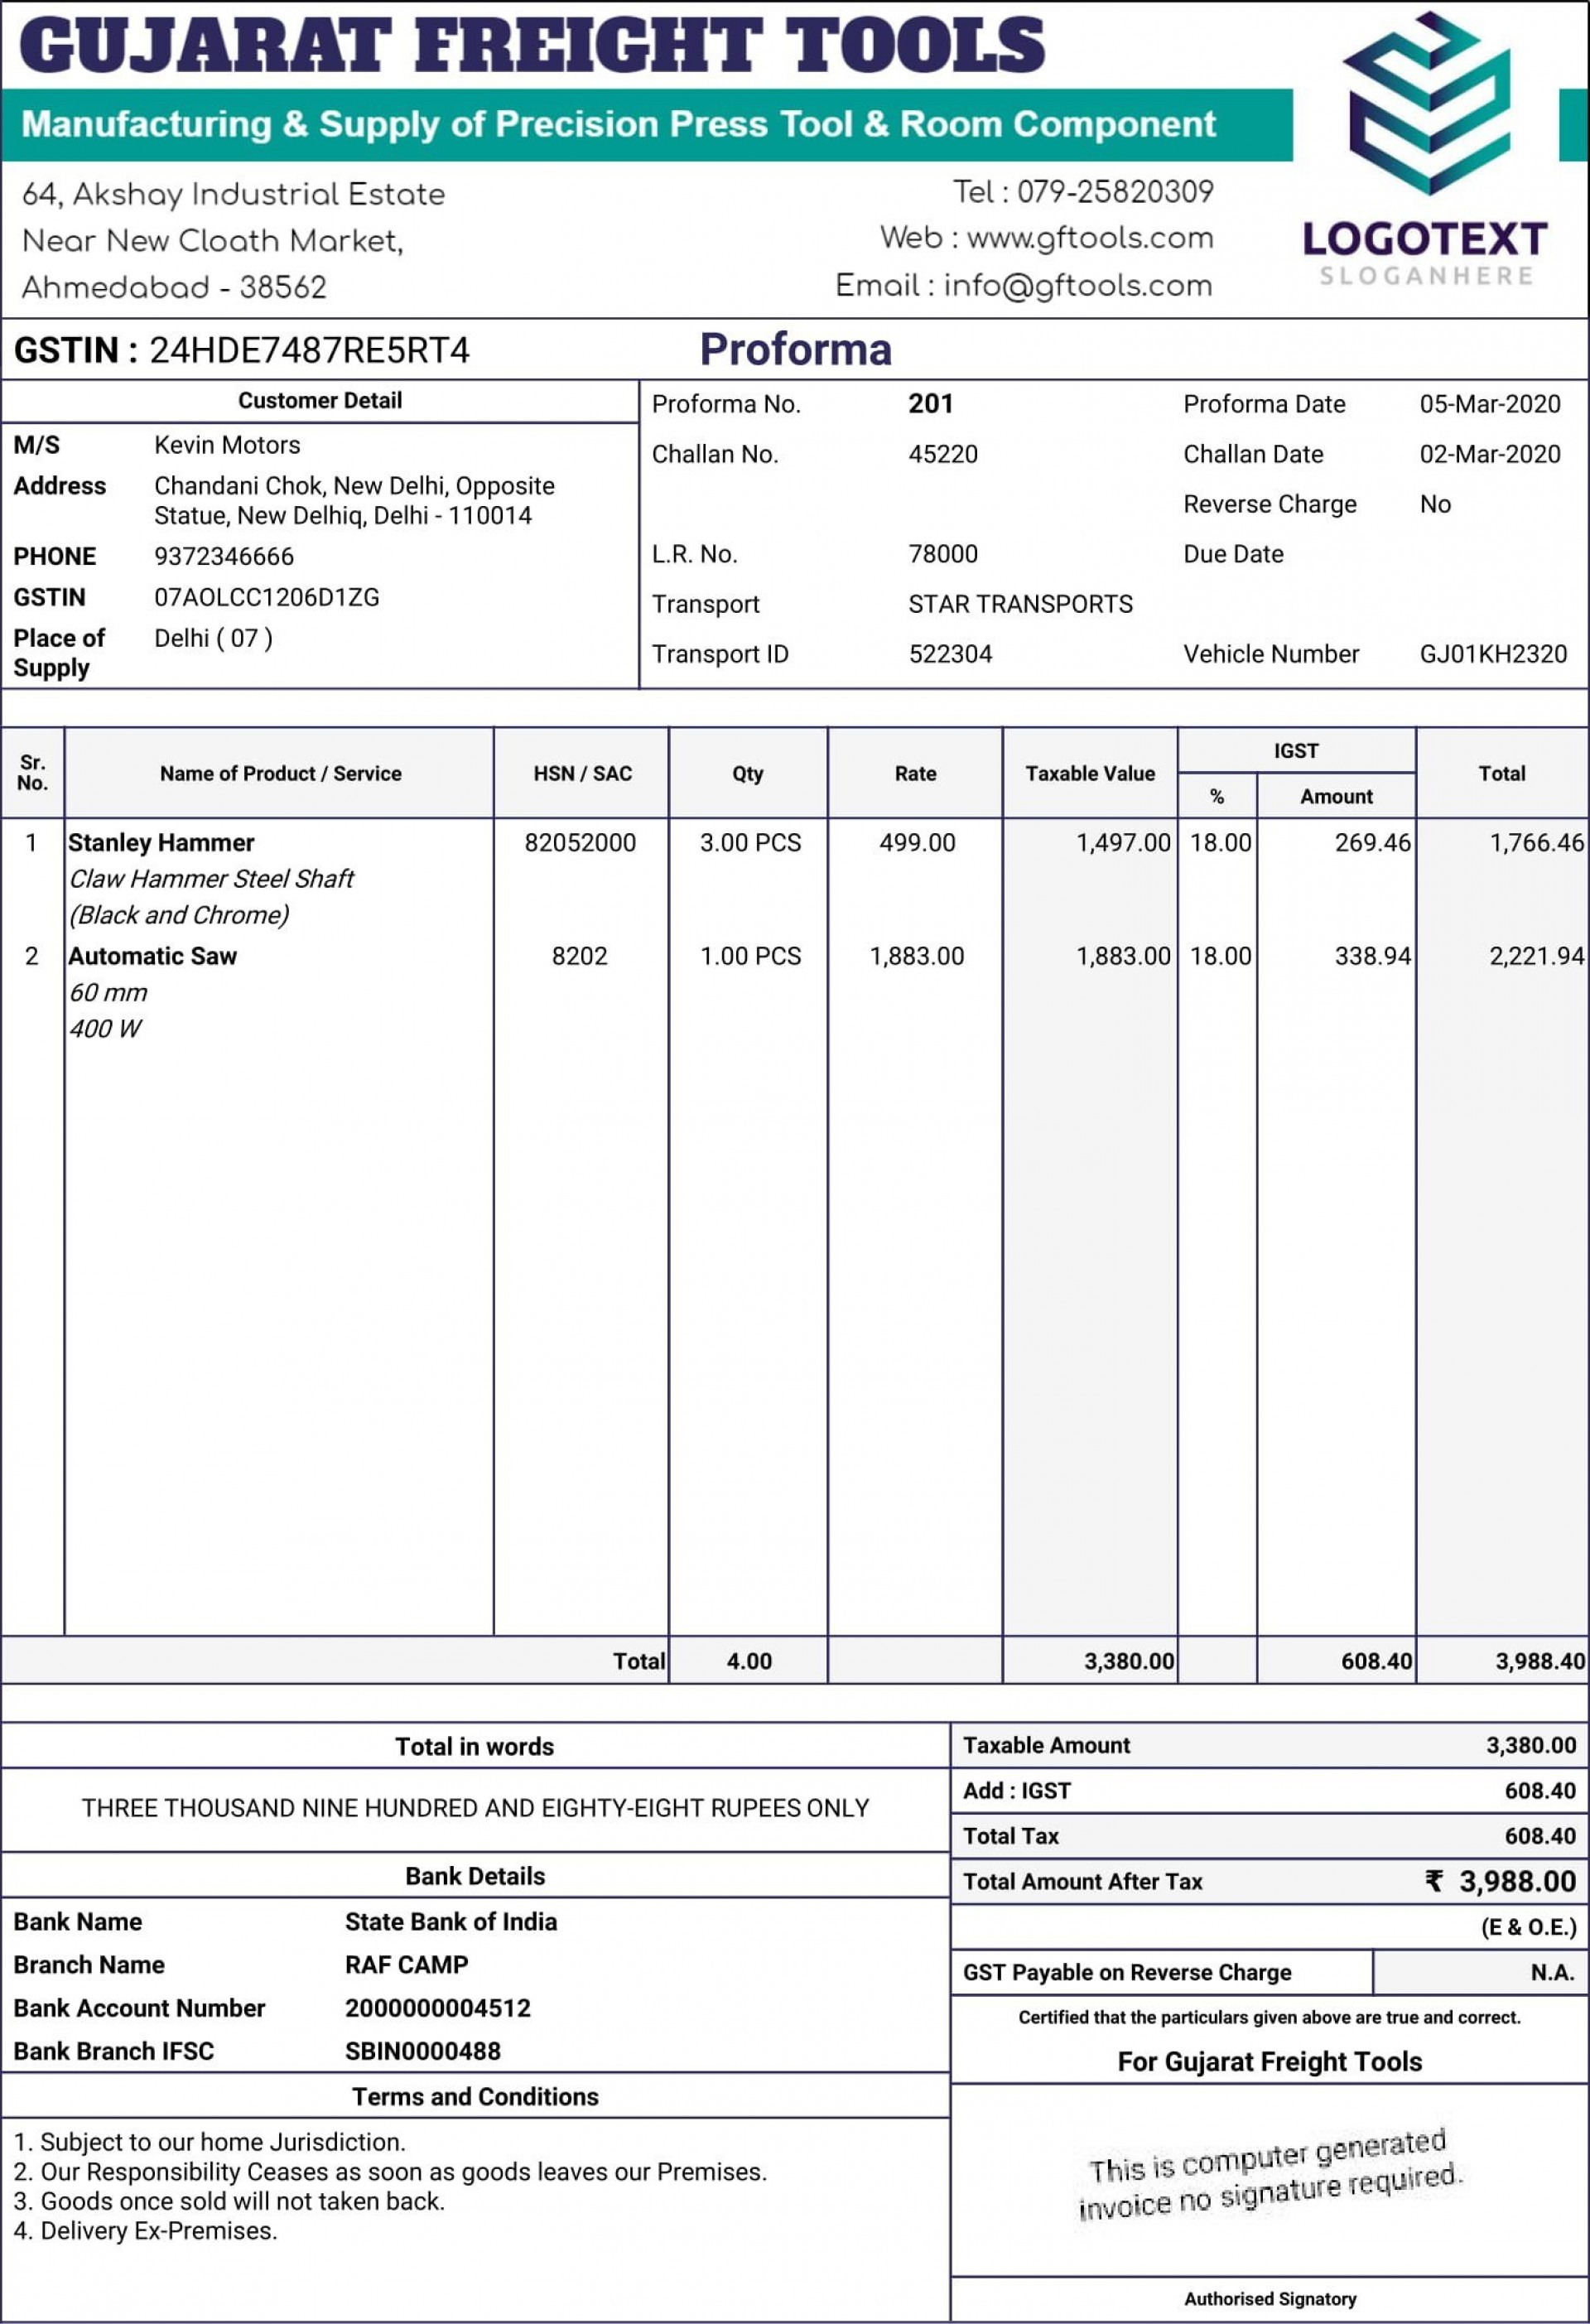 008 Best Free Excel Invoice Template Gst India Image 1920